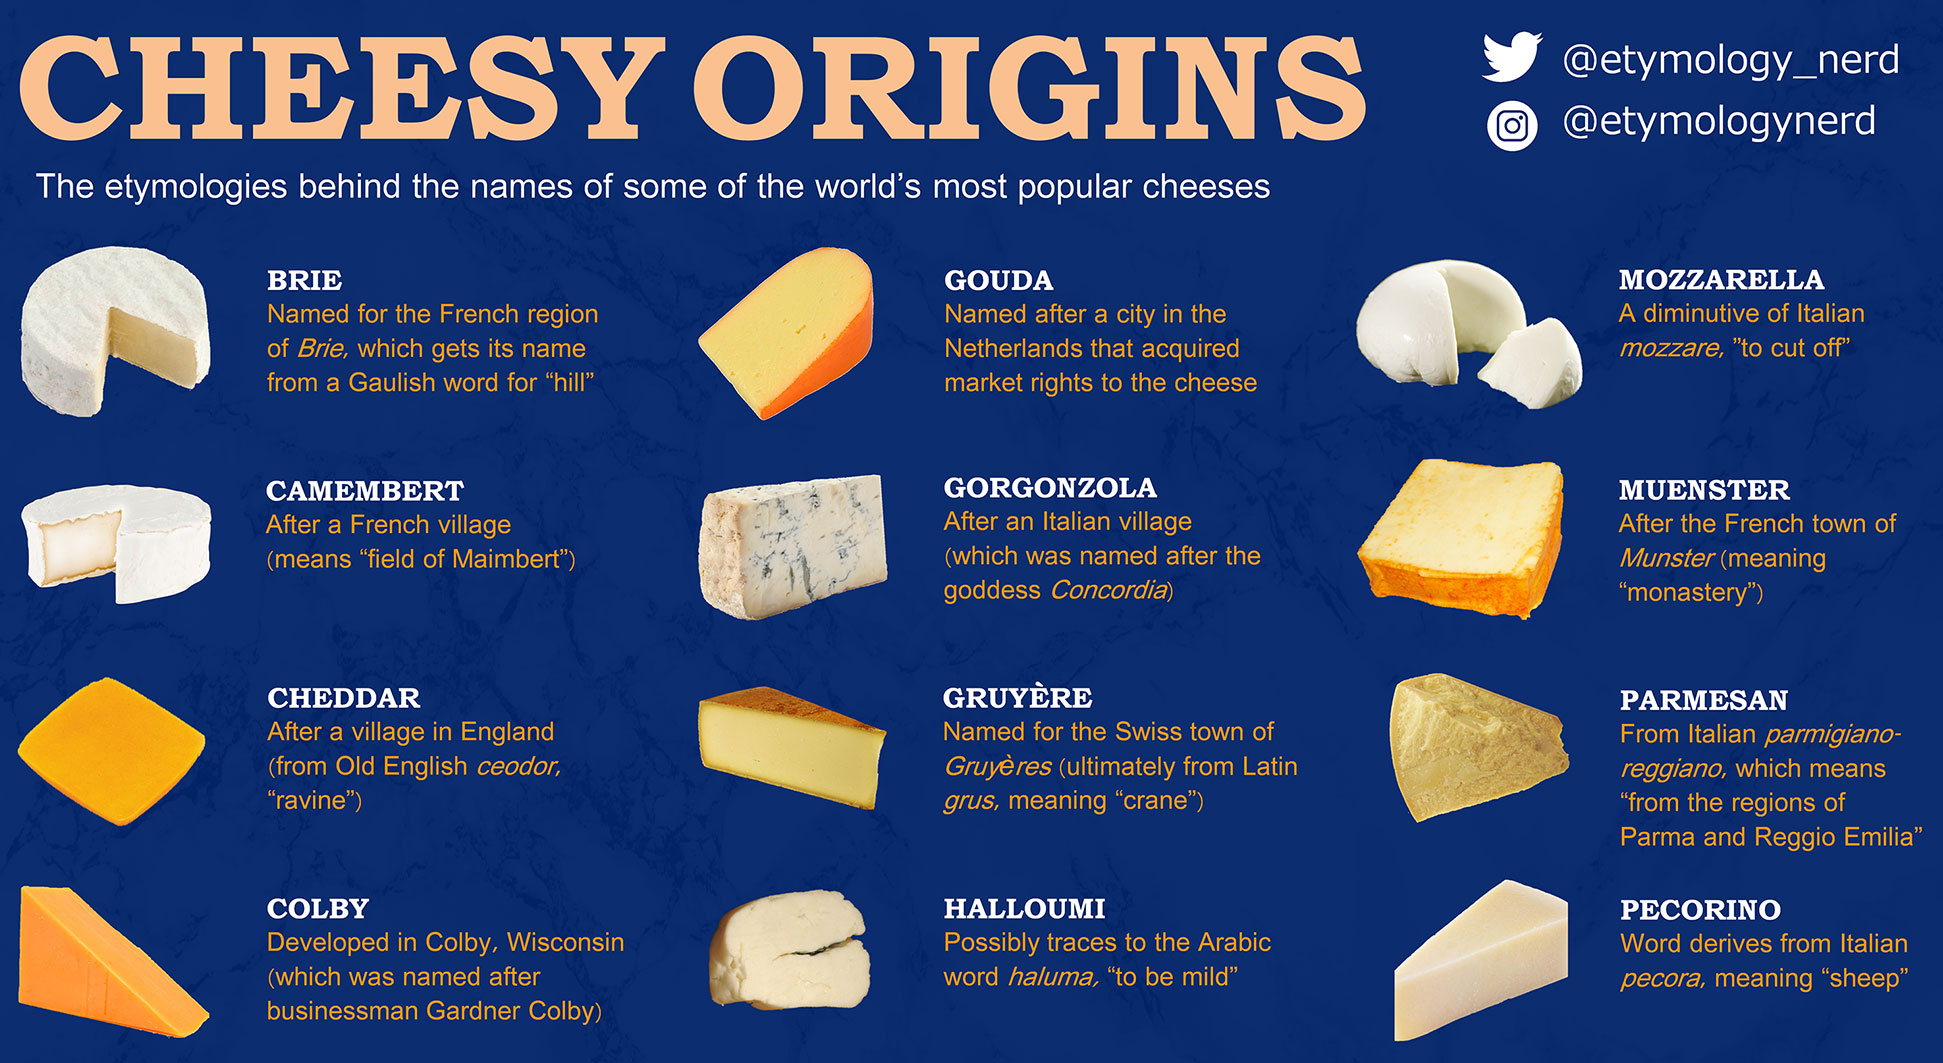 A partial infographic displaying many cheeses and a history of their names.